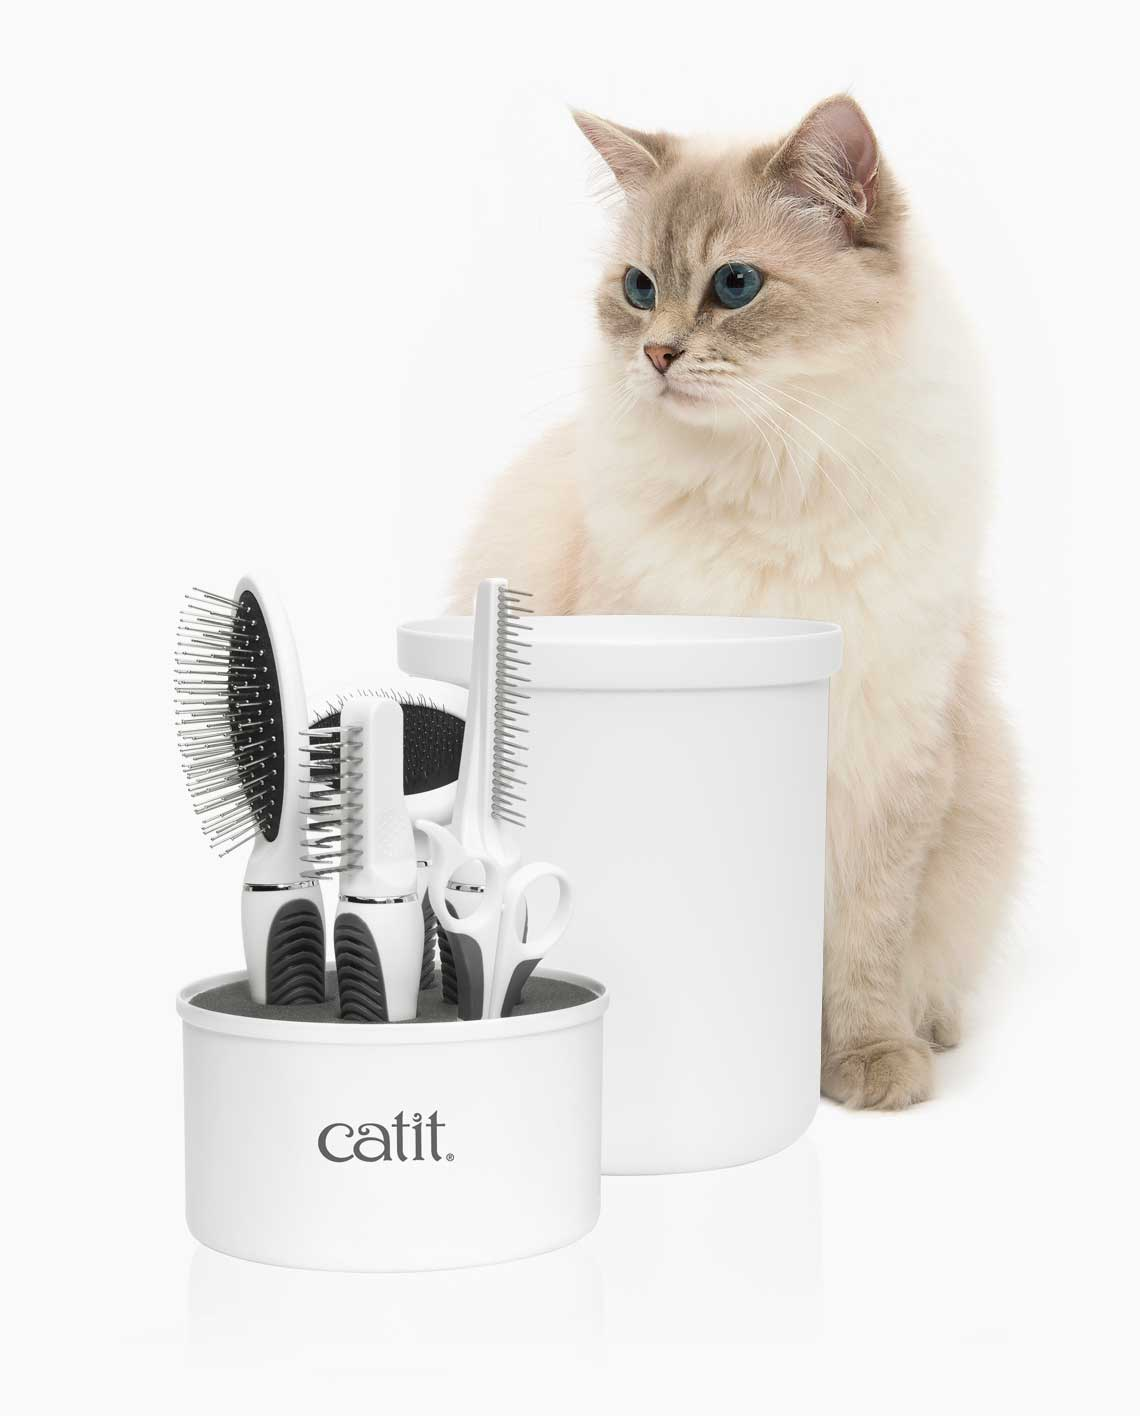 Beautiful Longhaired cat sitting behind Catit Grooming Kit